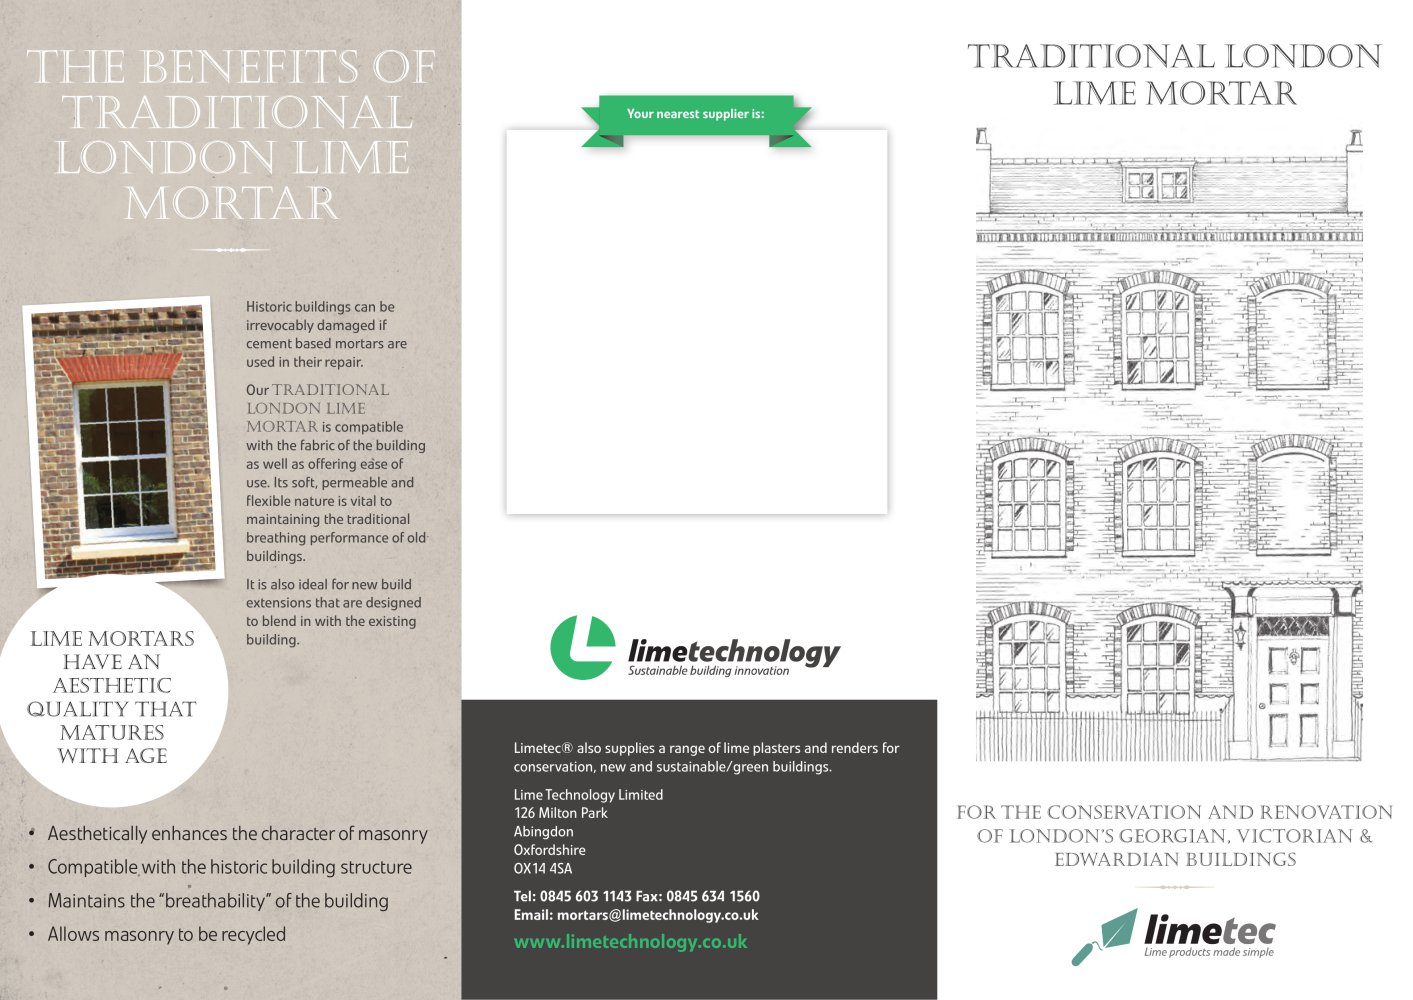 TRADITIONAL LONDON LIME MORTAR - 1 / 2 Pages